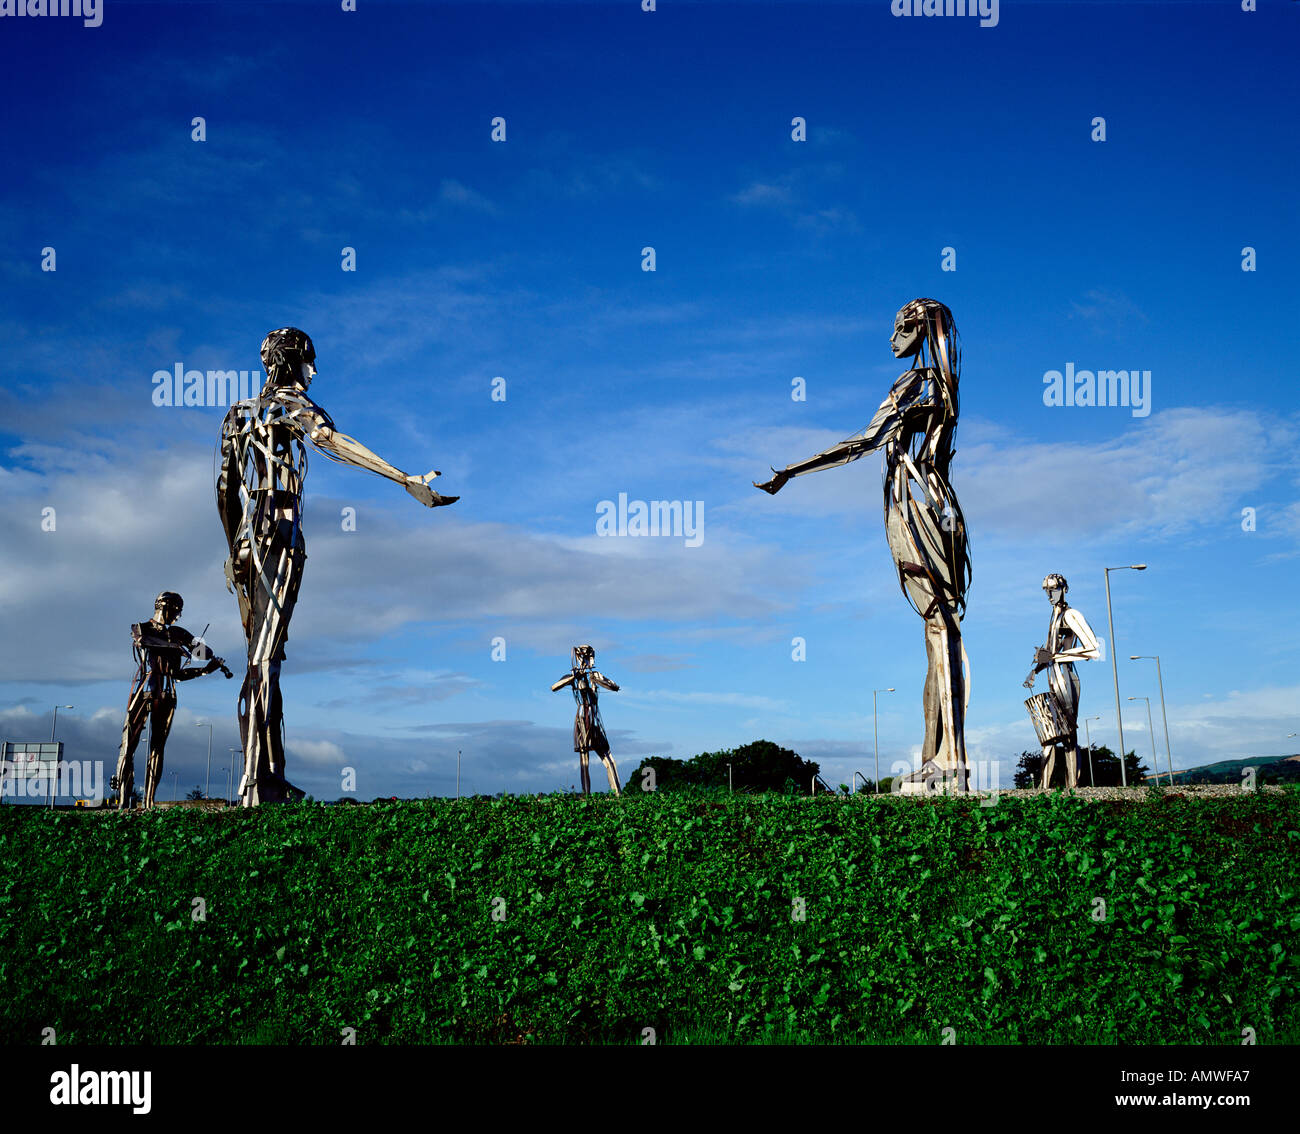 street sculptures strabane co tyrone northern ireland stock photo royalty free image. Black Bedroom Furniture Sets. Home Design Ideas